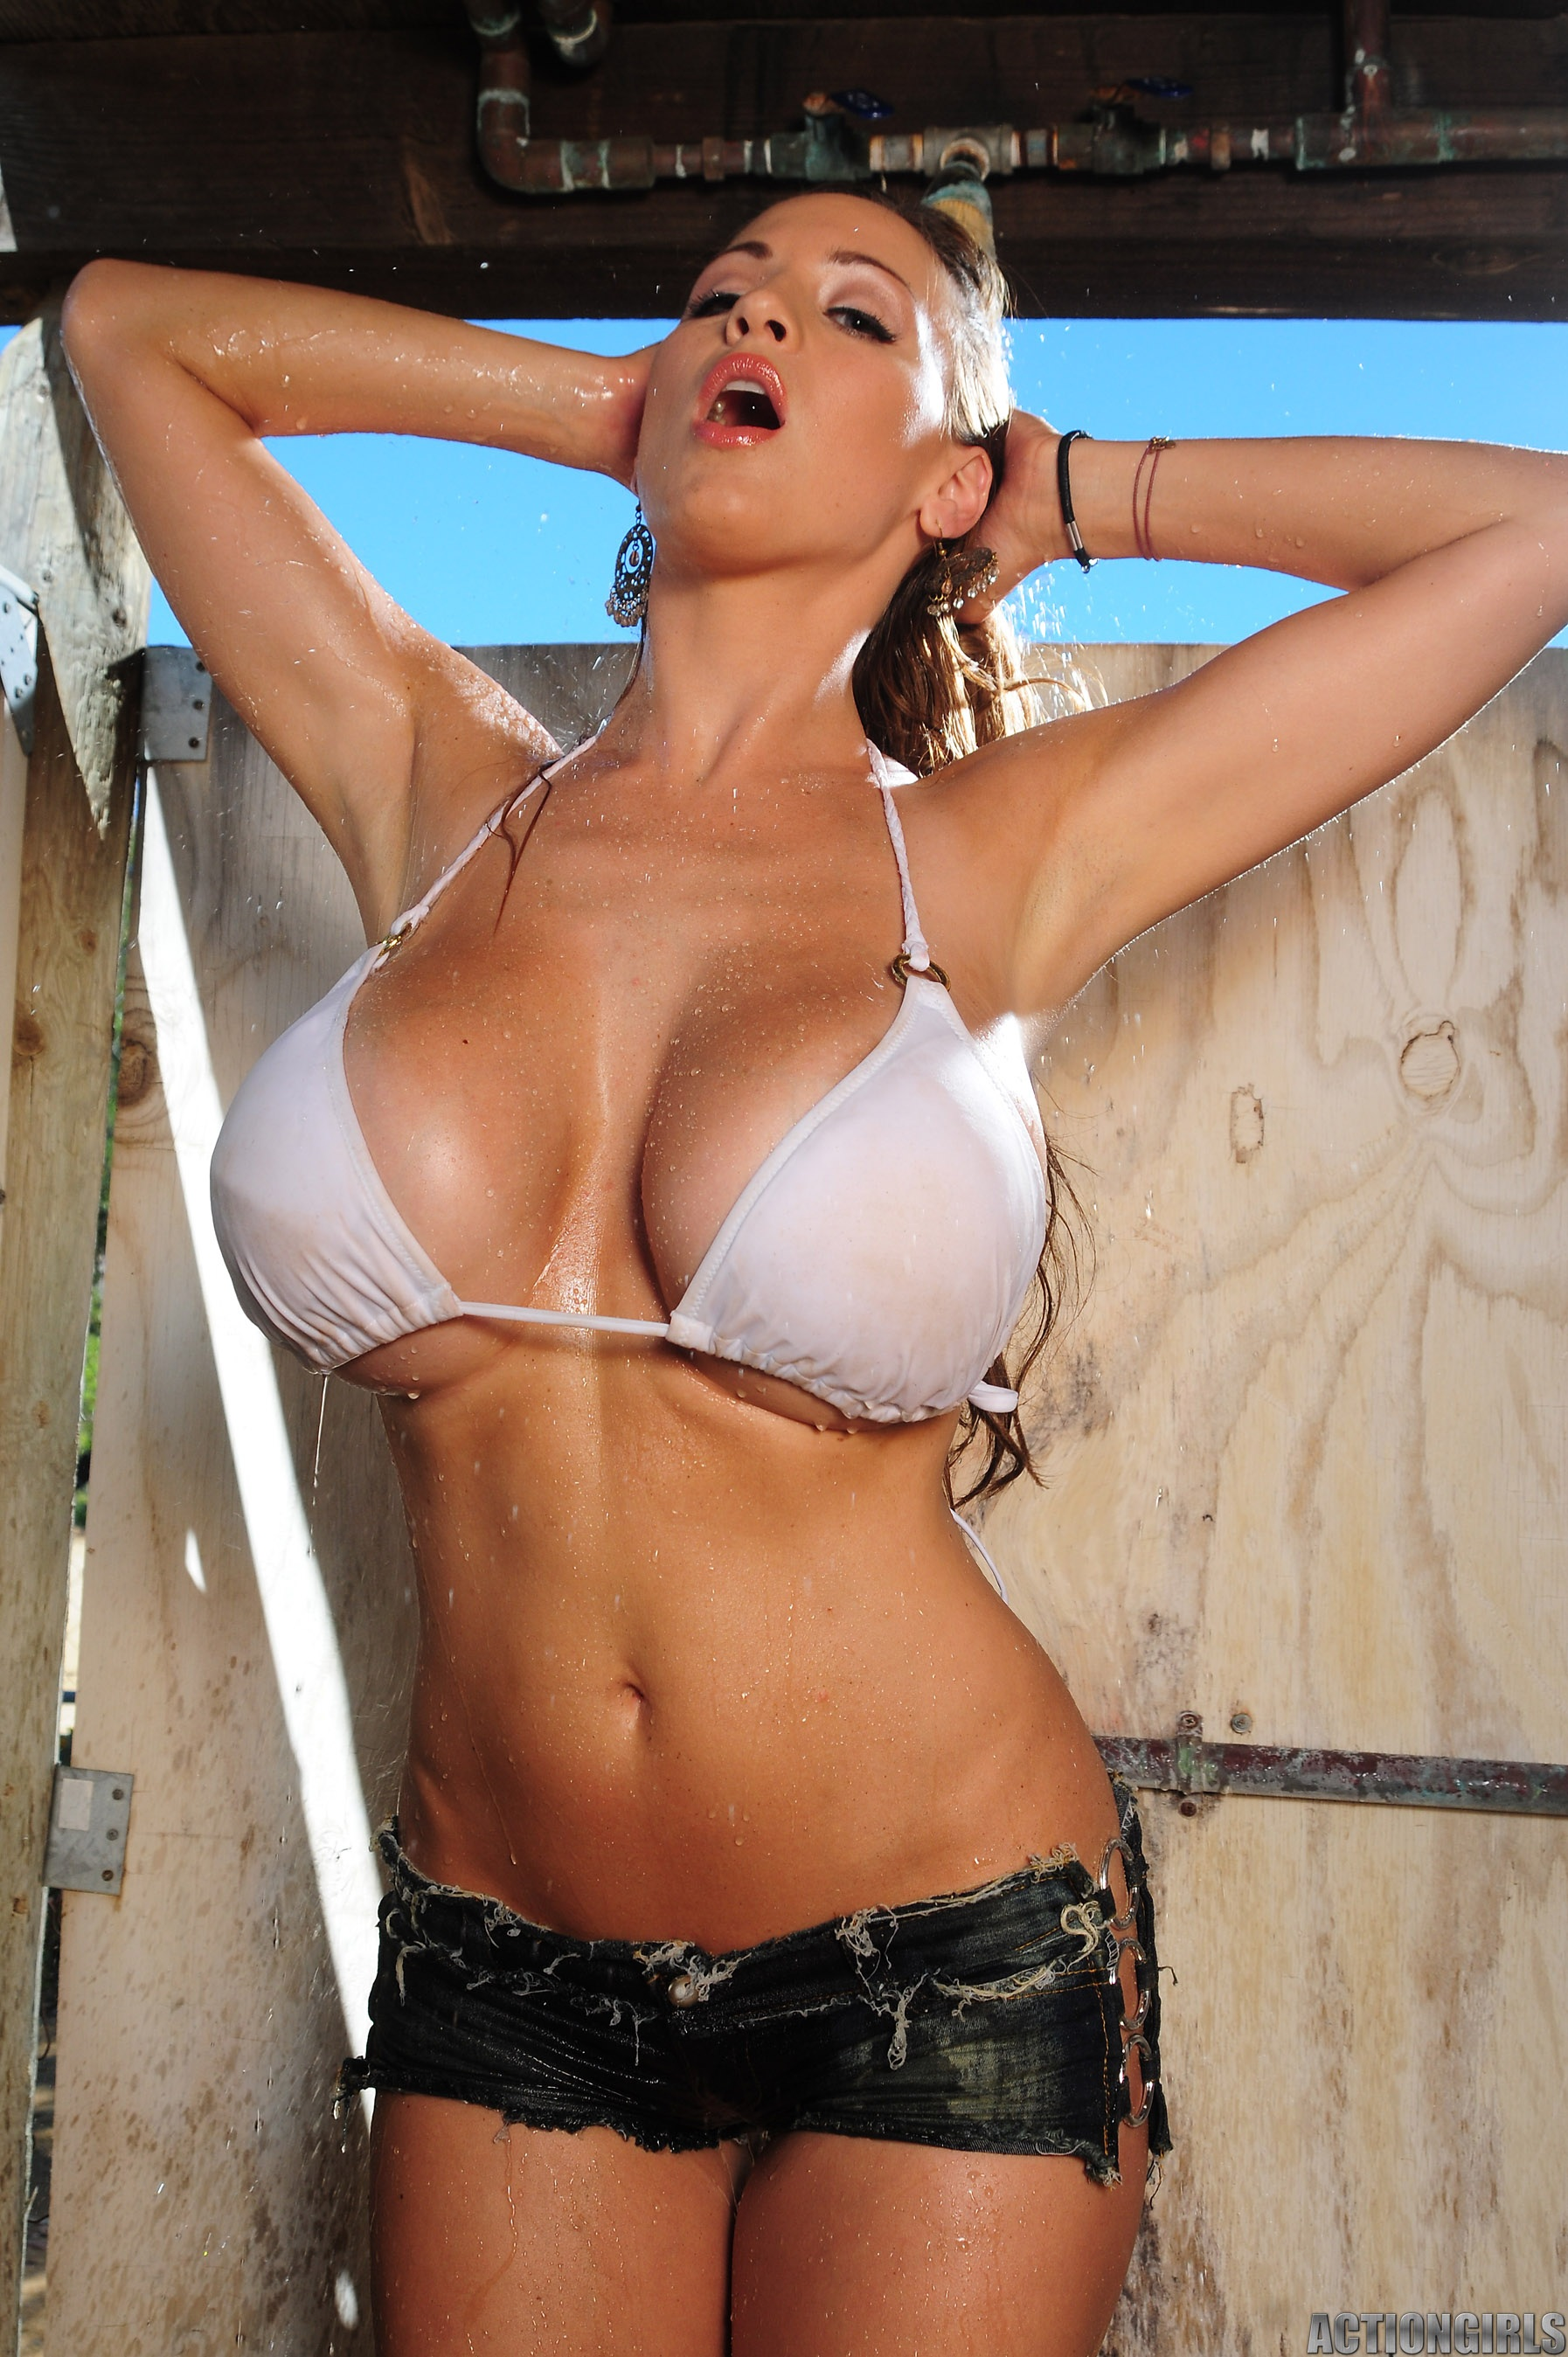 busty big boobs wet bikini triple d - GetaBikini.com USA